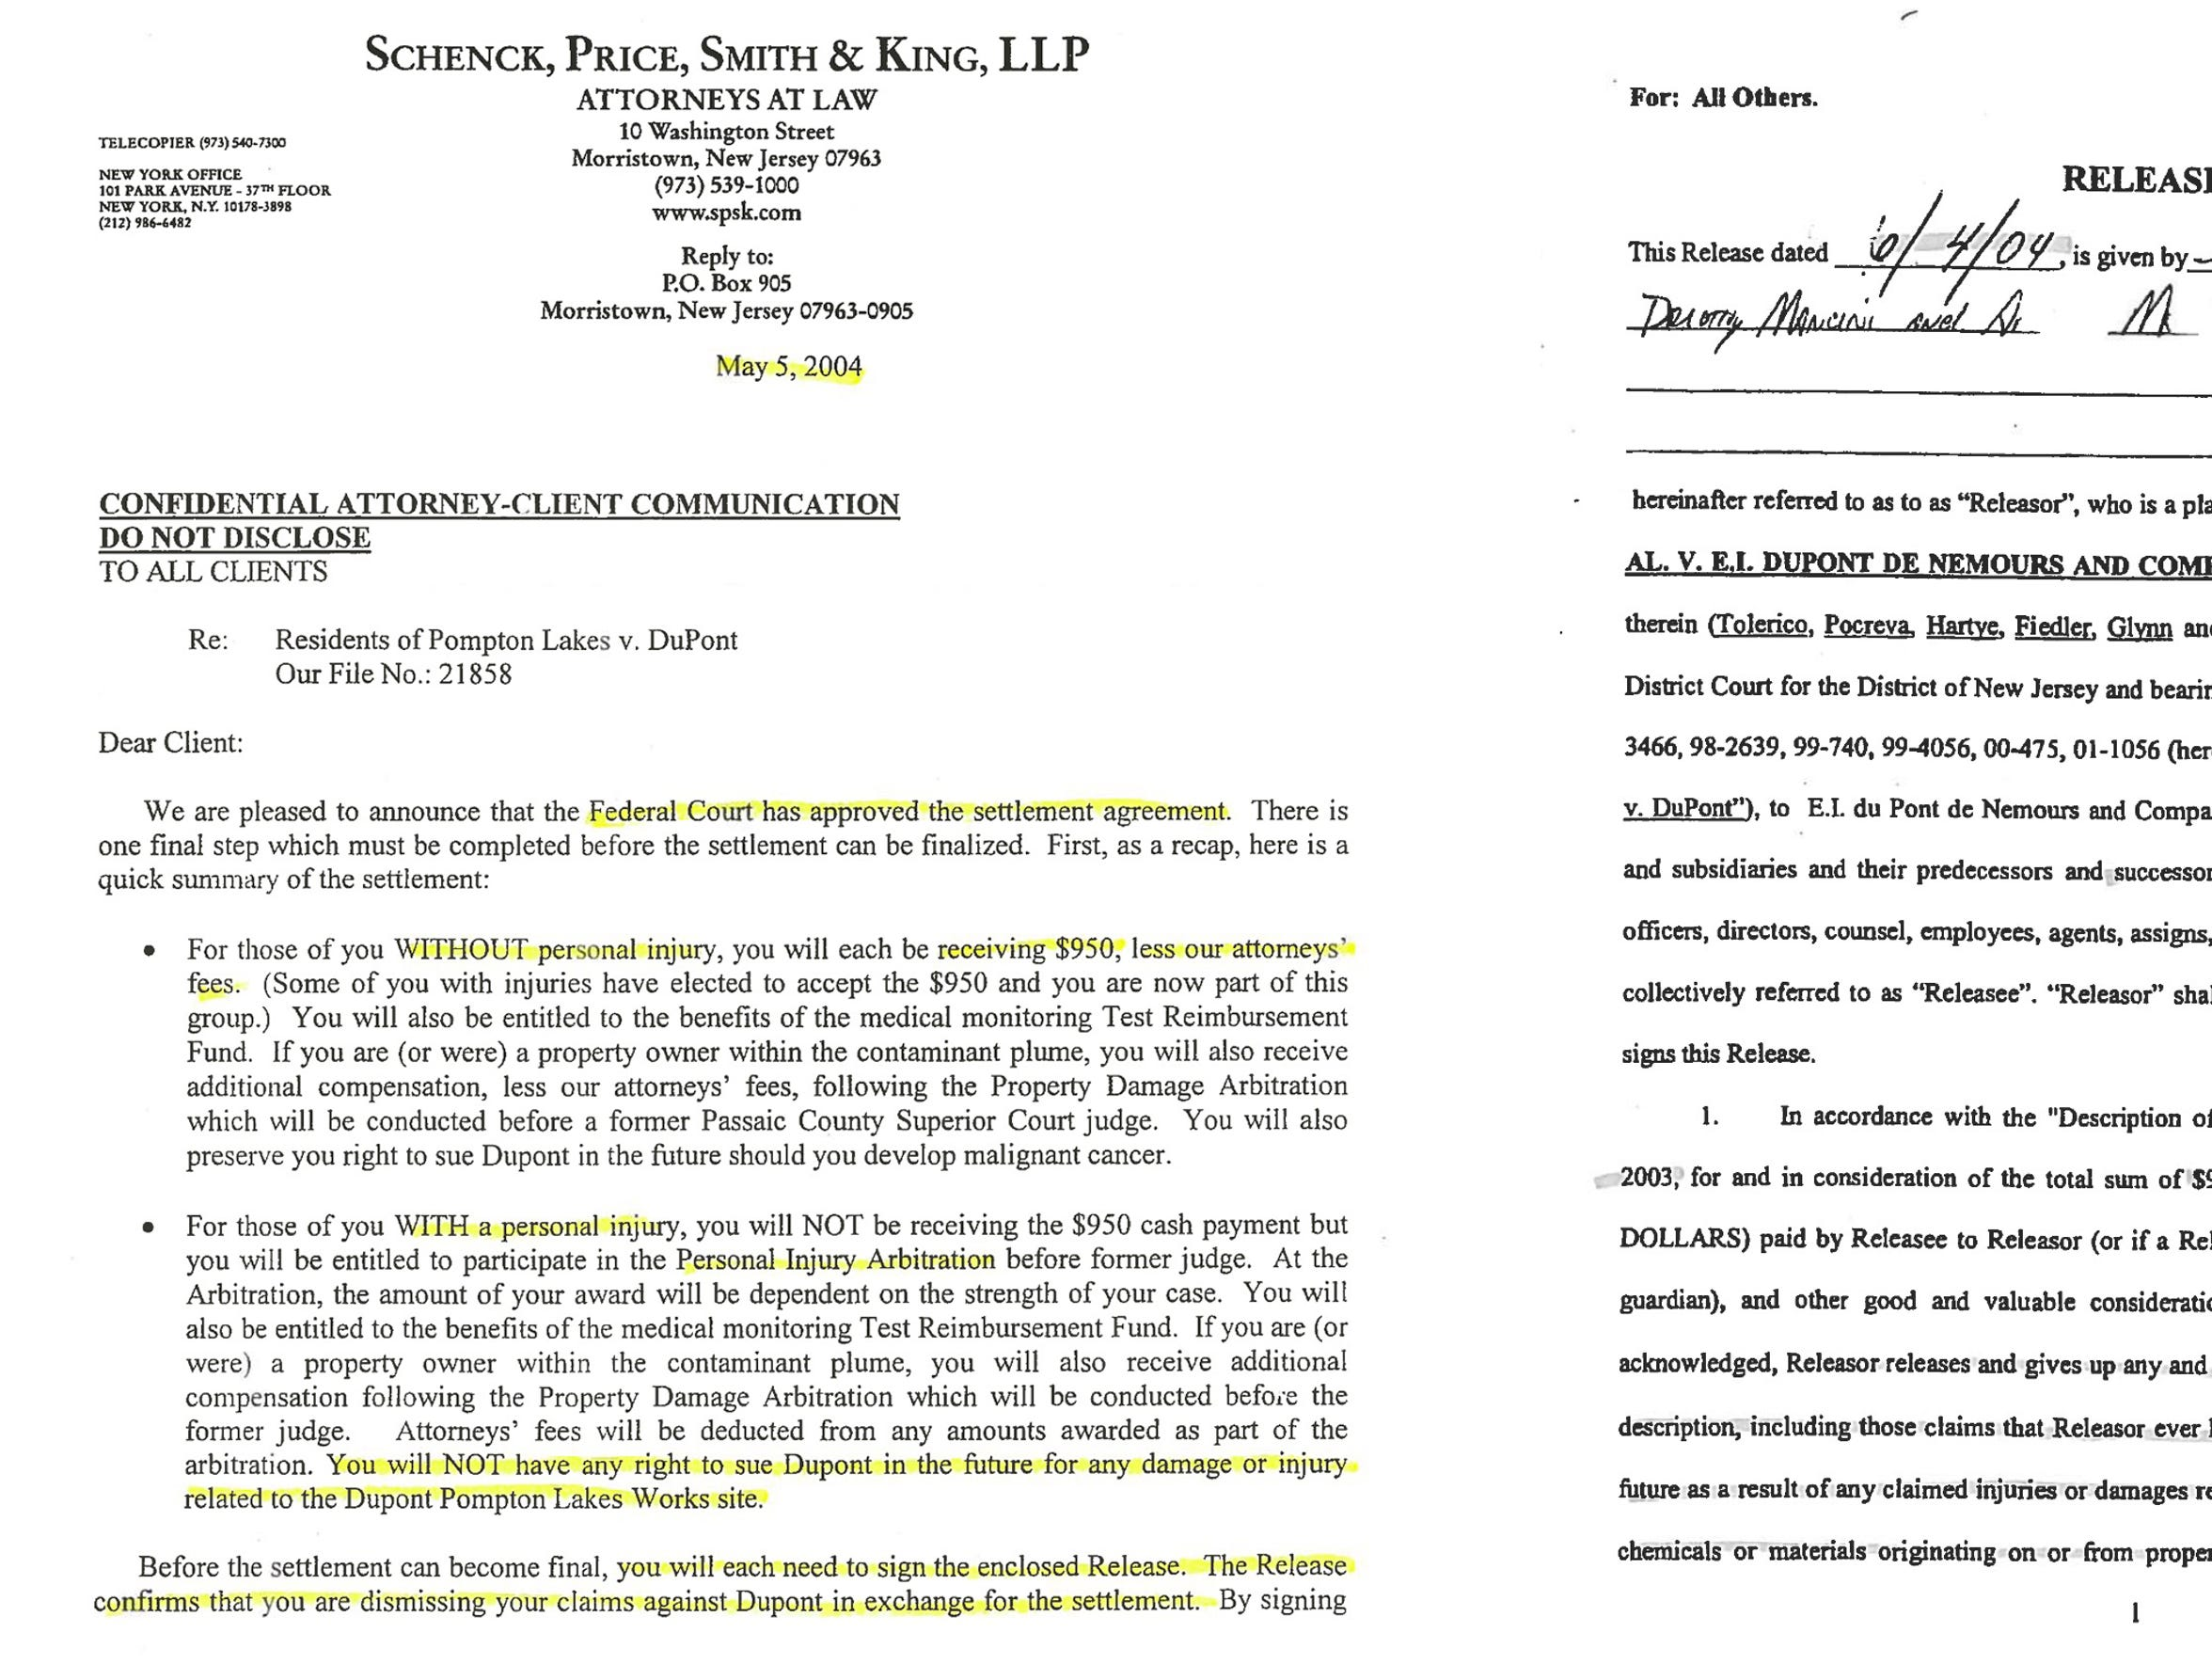 2004 letter from residents' lawyer to residents outlining a settlement with DuPont and the stipulation that they would have to sign a release waiving their rights to sue DuPont for any future pollution found in their neighborhood. Residents had not yet been told about the potential for vapor intrusion.